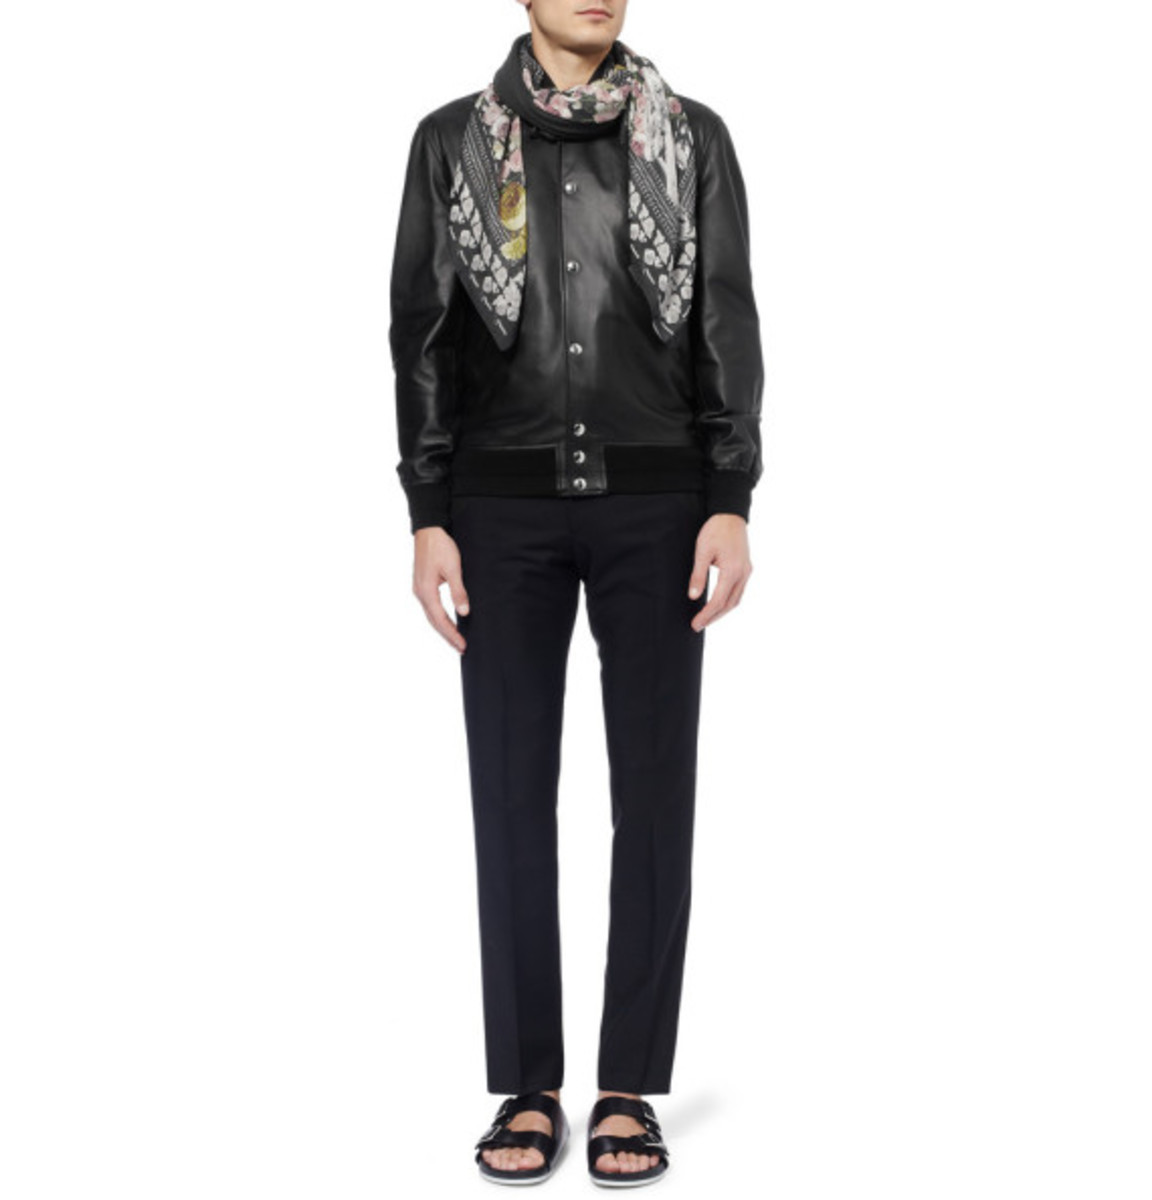 givenchy-leather-embroidered-star-baseball-jacket-07